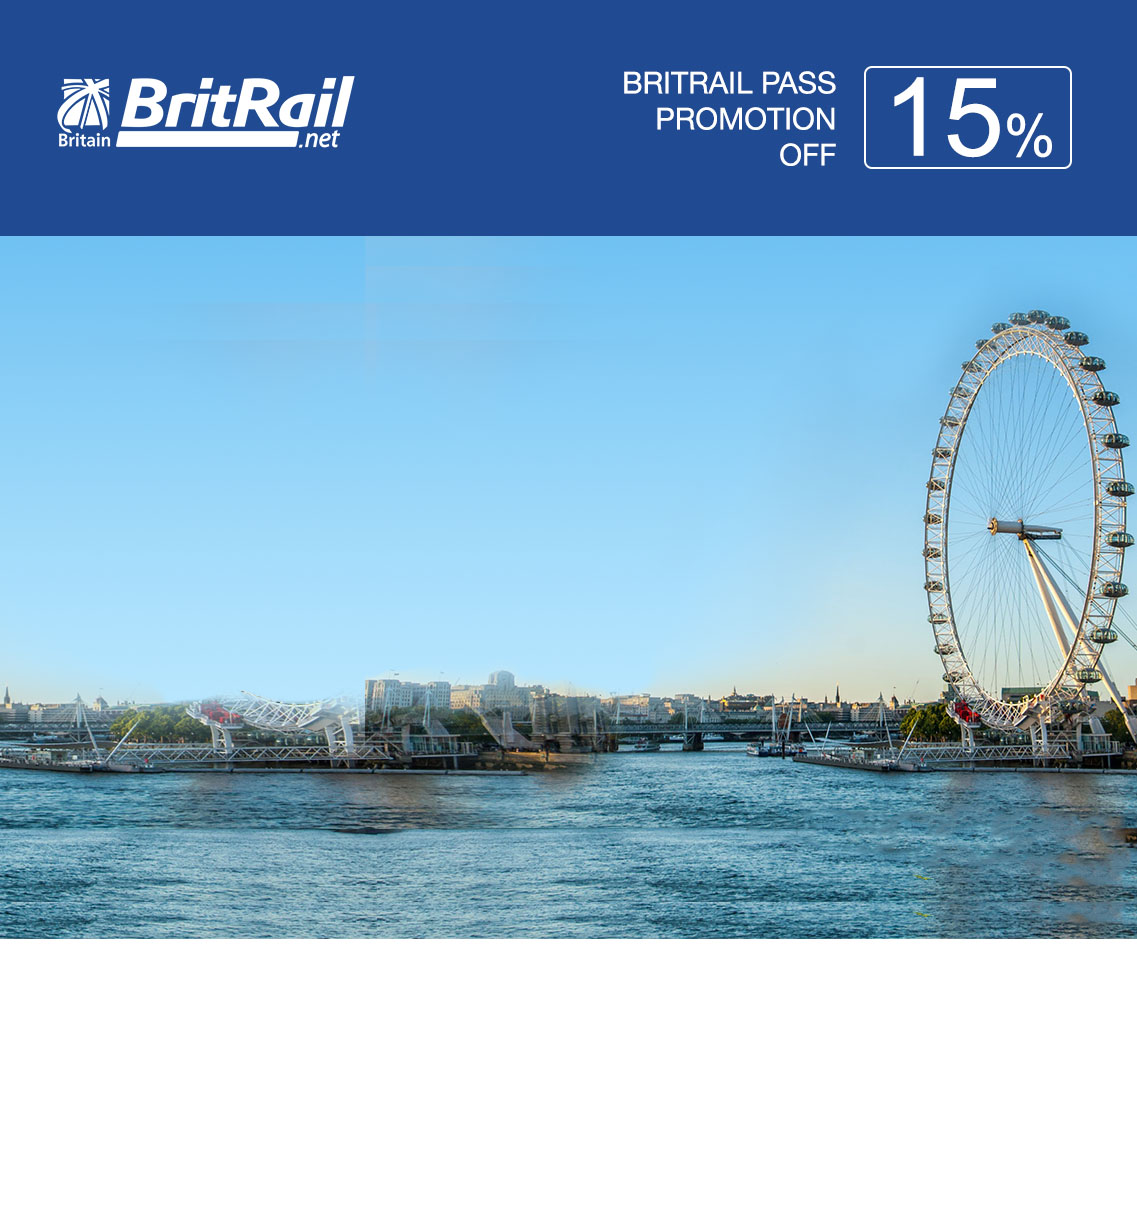 BritRail Pass Promotion